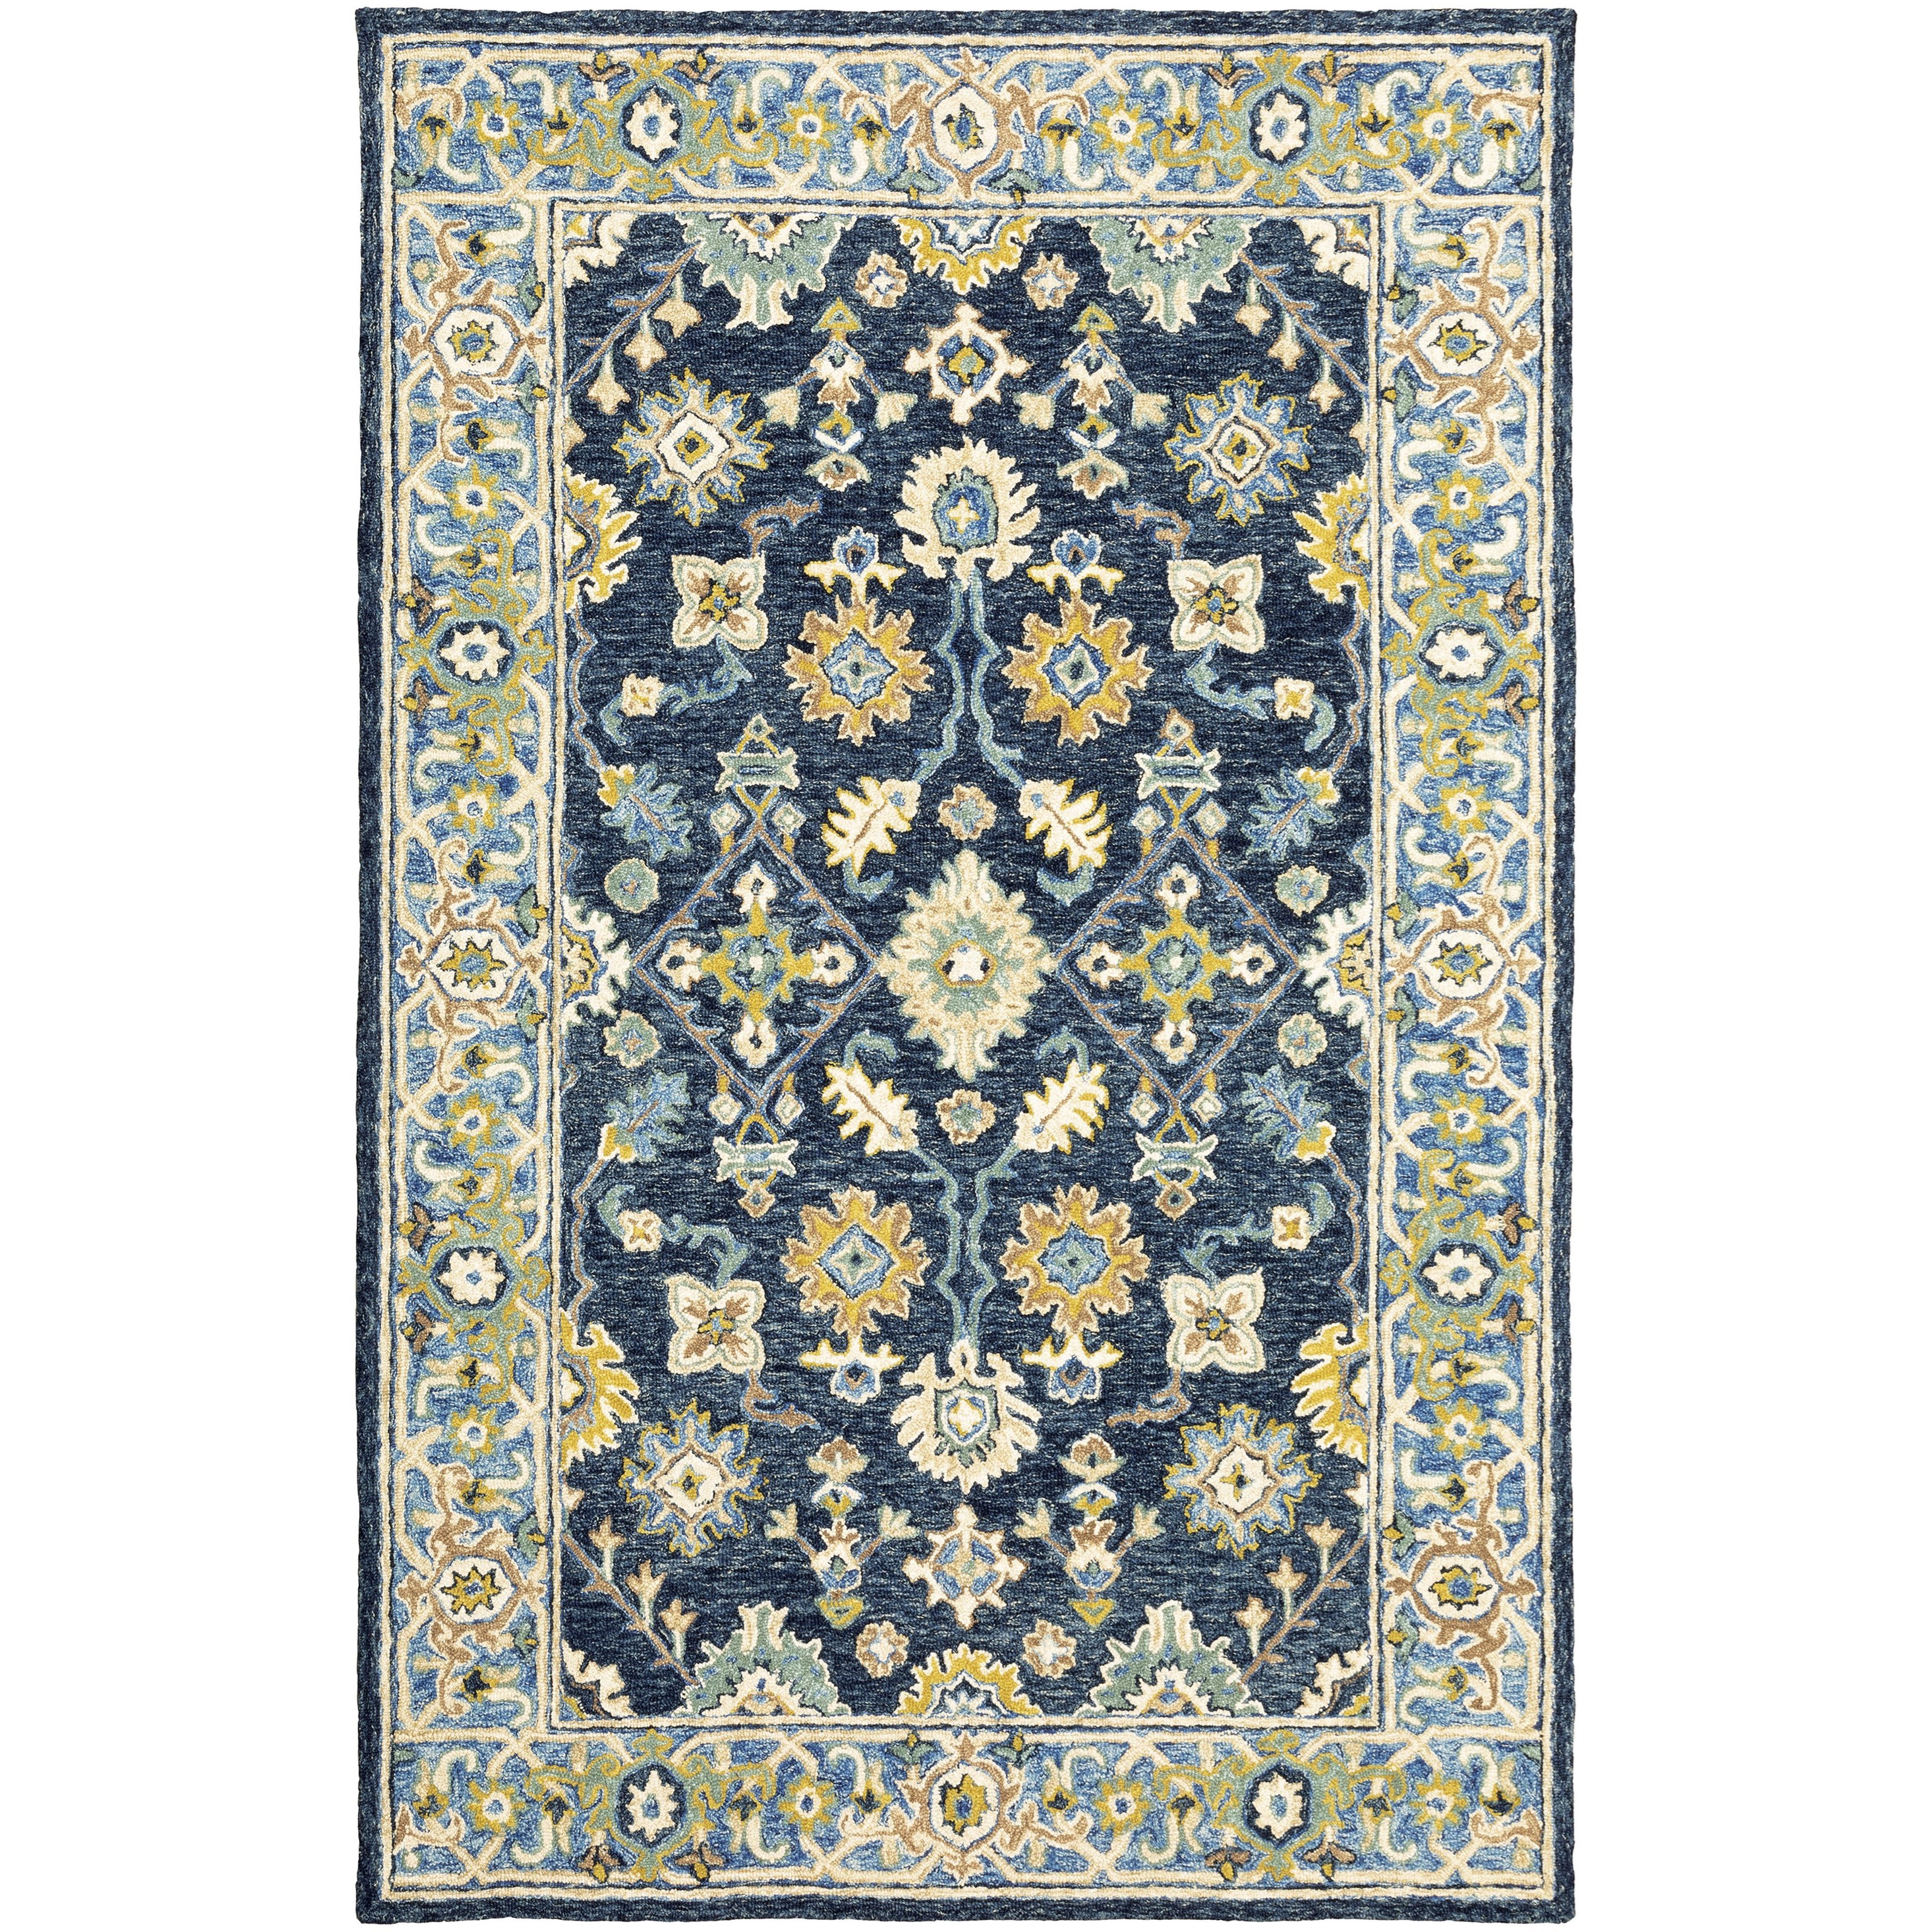 Alfresco 8' X 10' Rectangle Rug by Oriental Weavers at Godby Home Furnishings